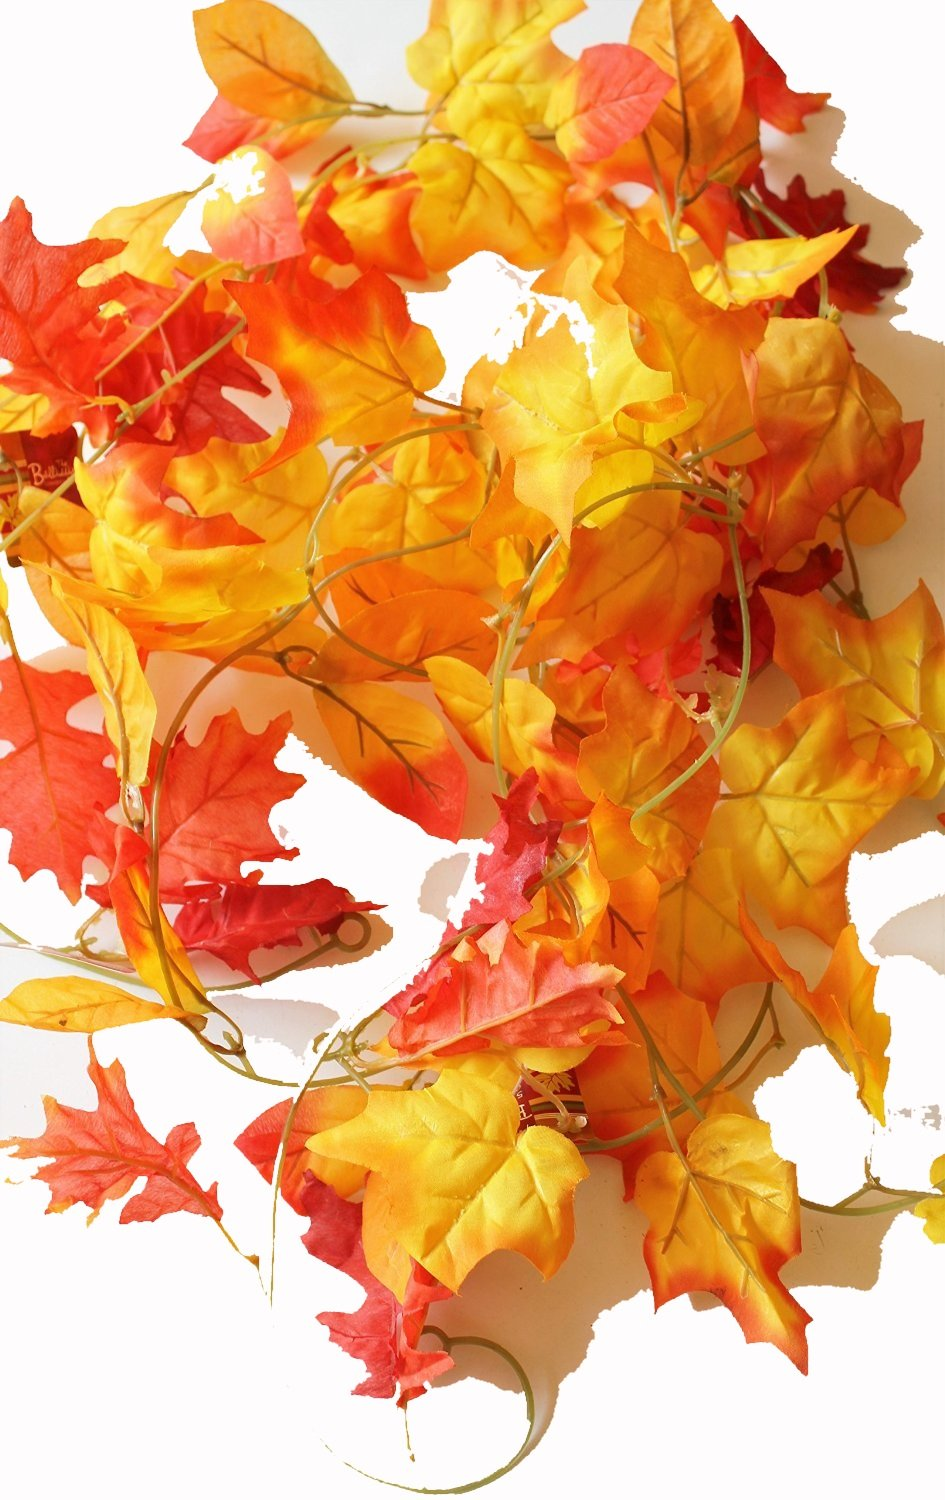 silk flower arrangements set of 3 autumn garlands with artificial mixed fall color leaves - 5 foot x 3, 15 total!!